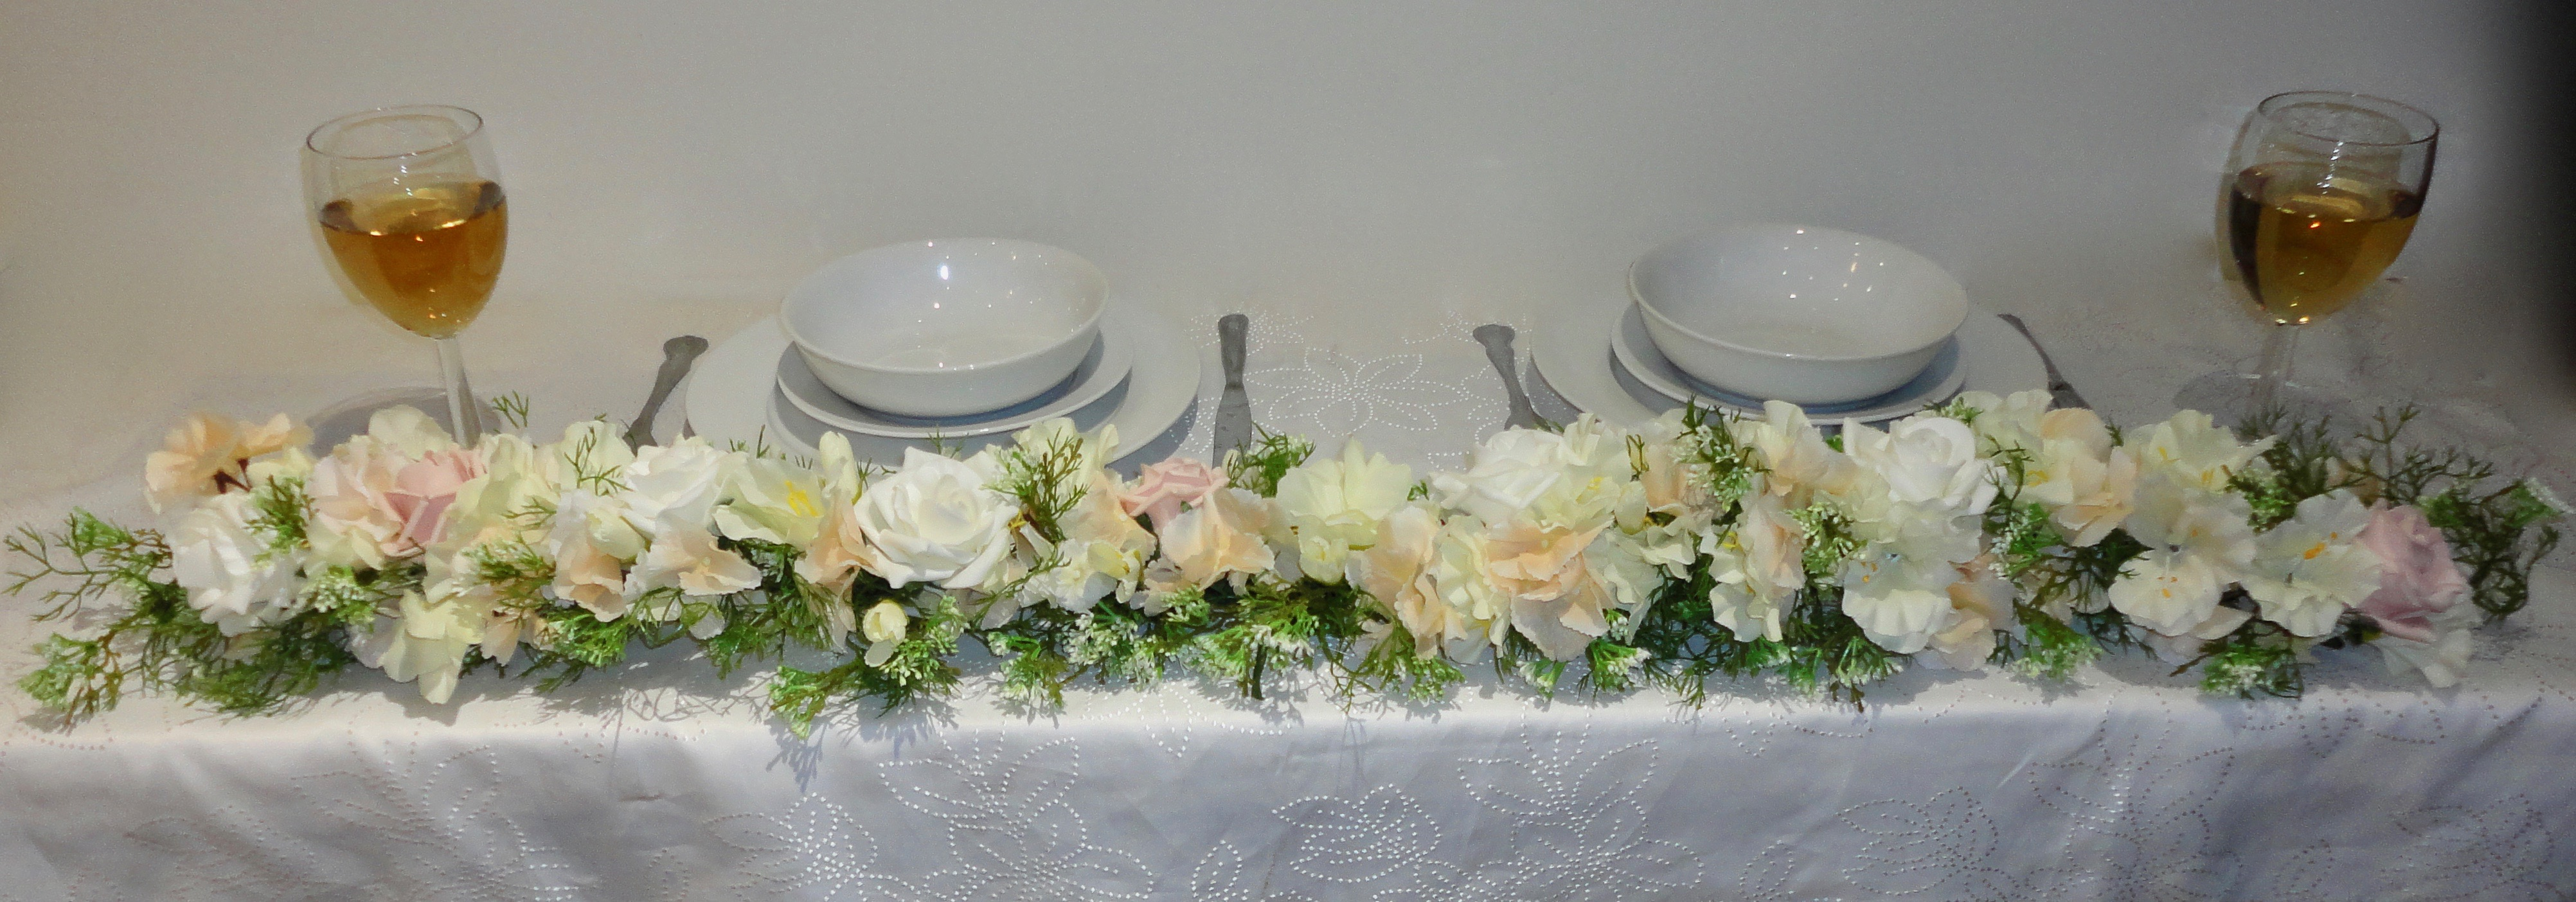 Wedding Garland Beautiful lush garland of blush hydrangea, ivory & blush roses, freesia